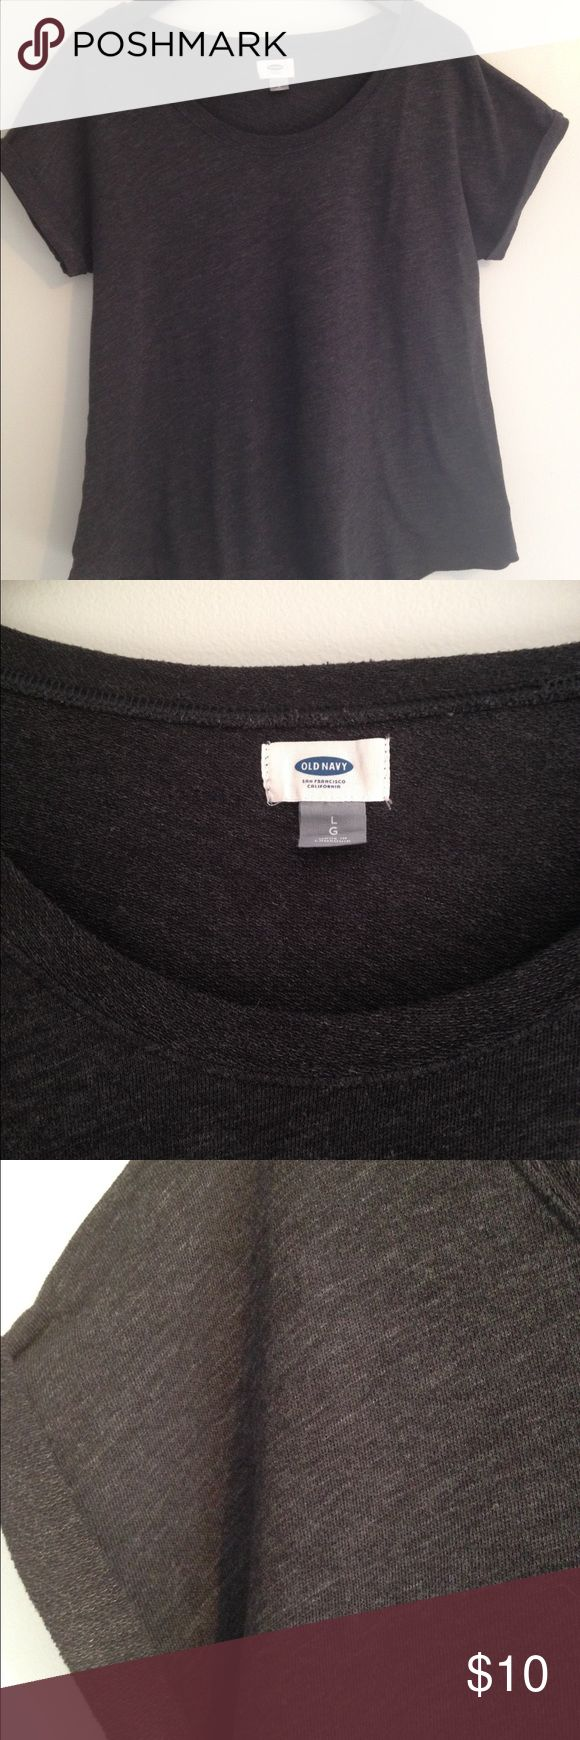 Old Navy Short Sleeved Top Charcoal Gray Old Navy top, excellent condition,. Old Navy Tops Tees - Short Sleeve